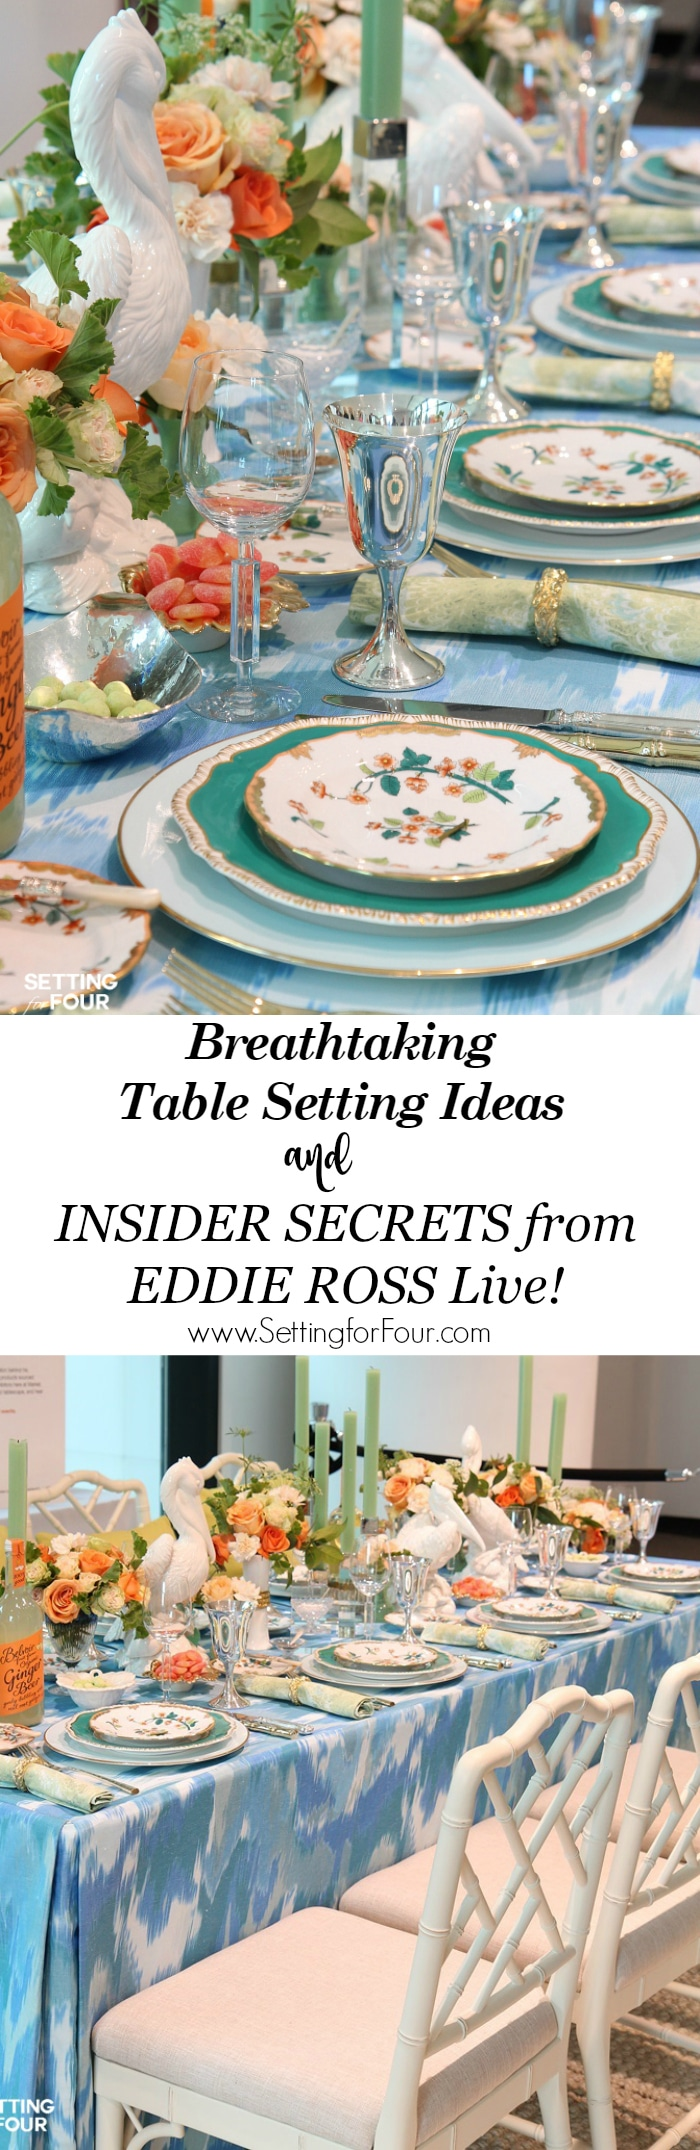 Insider Secrets Breathtaking Table Setting Ideas From